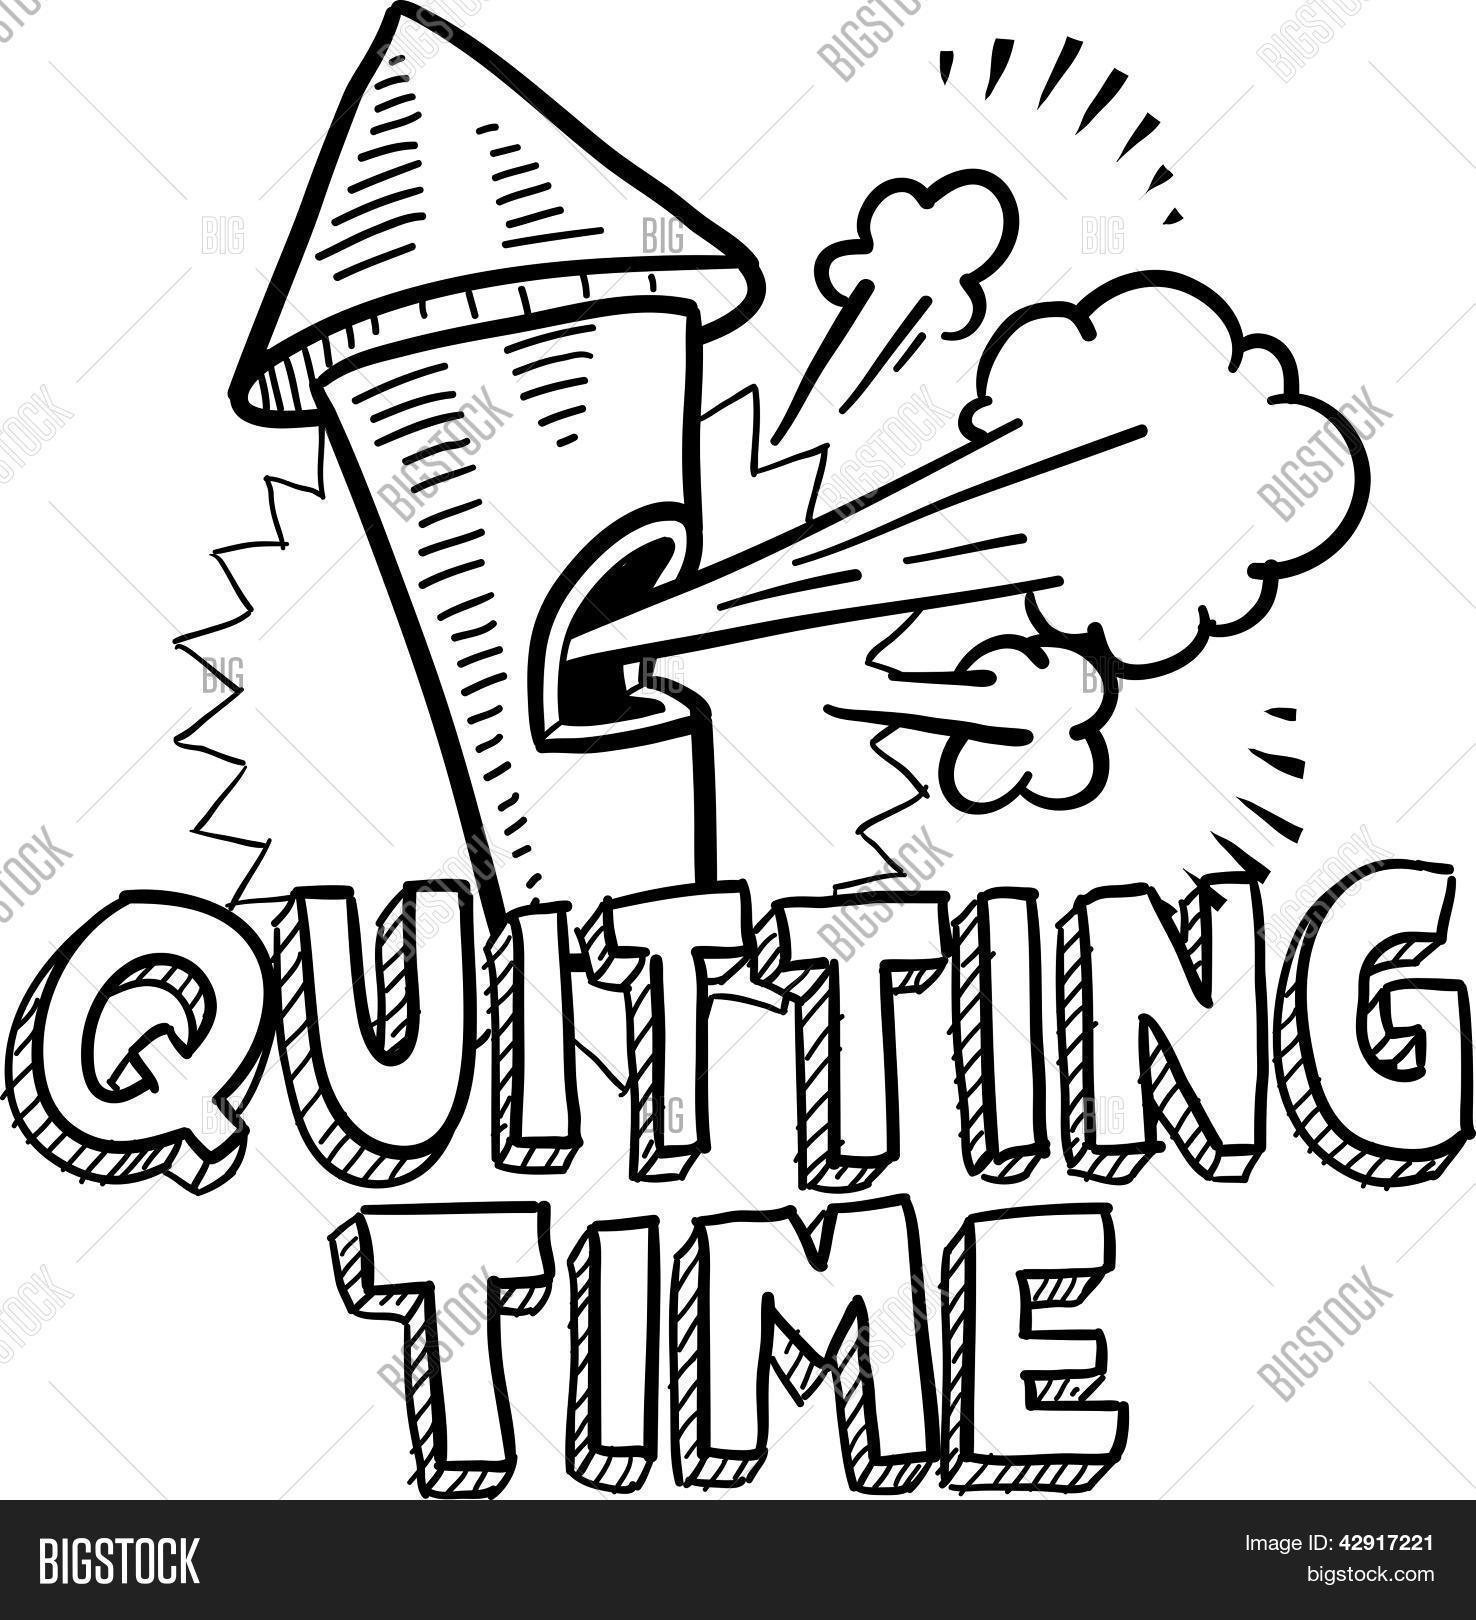 Quitting Time Whistle Vector Amp Photo Free Trial